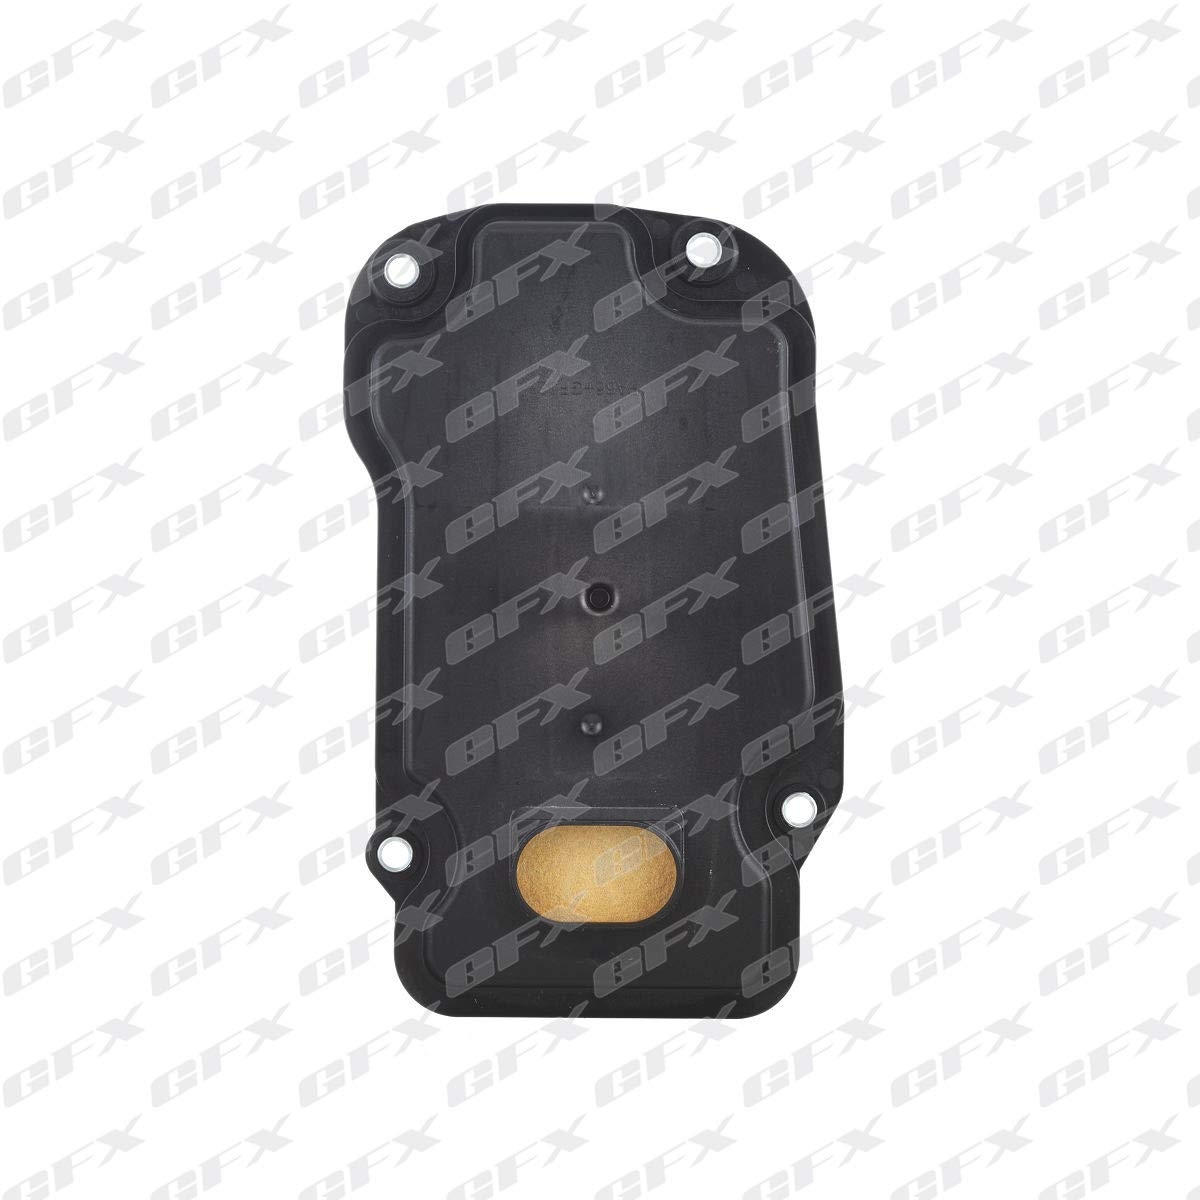 A960E Filter Toyota 06-ON 97732A 35330-30090 GS300//430 IS200